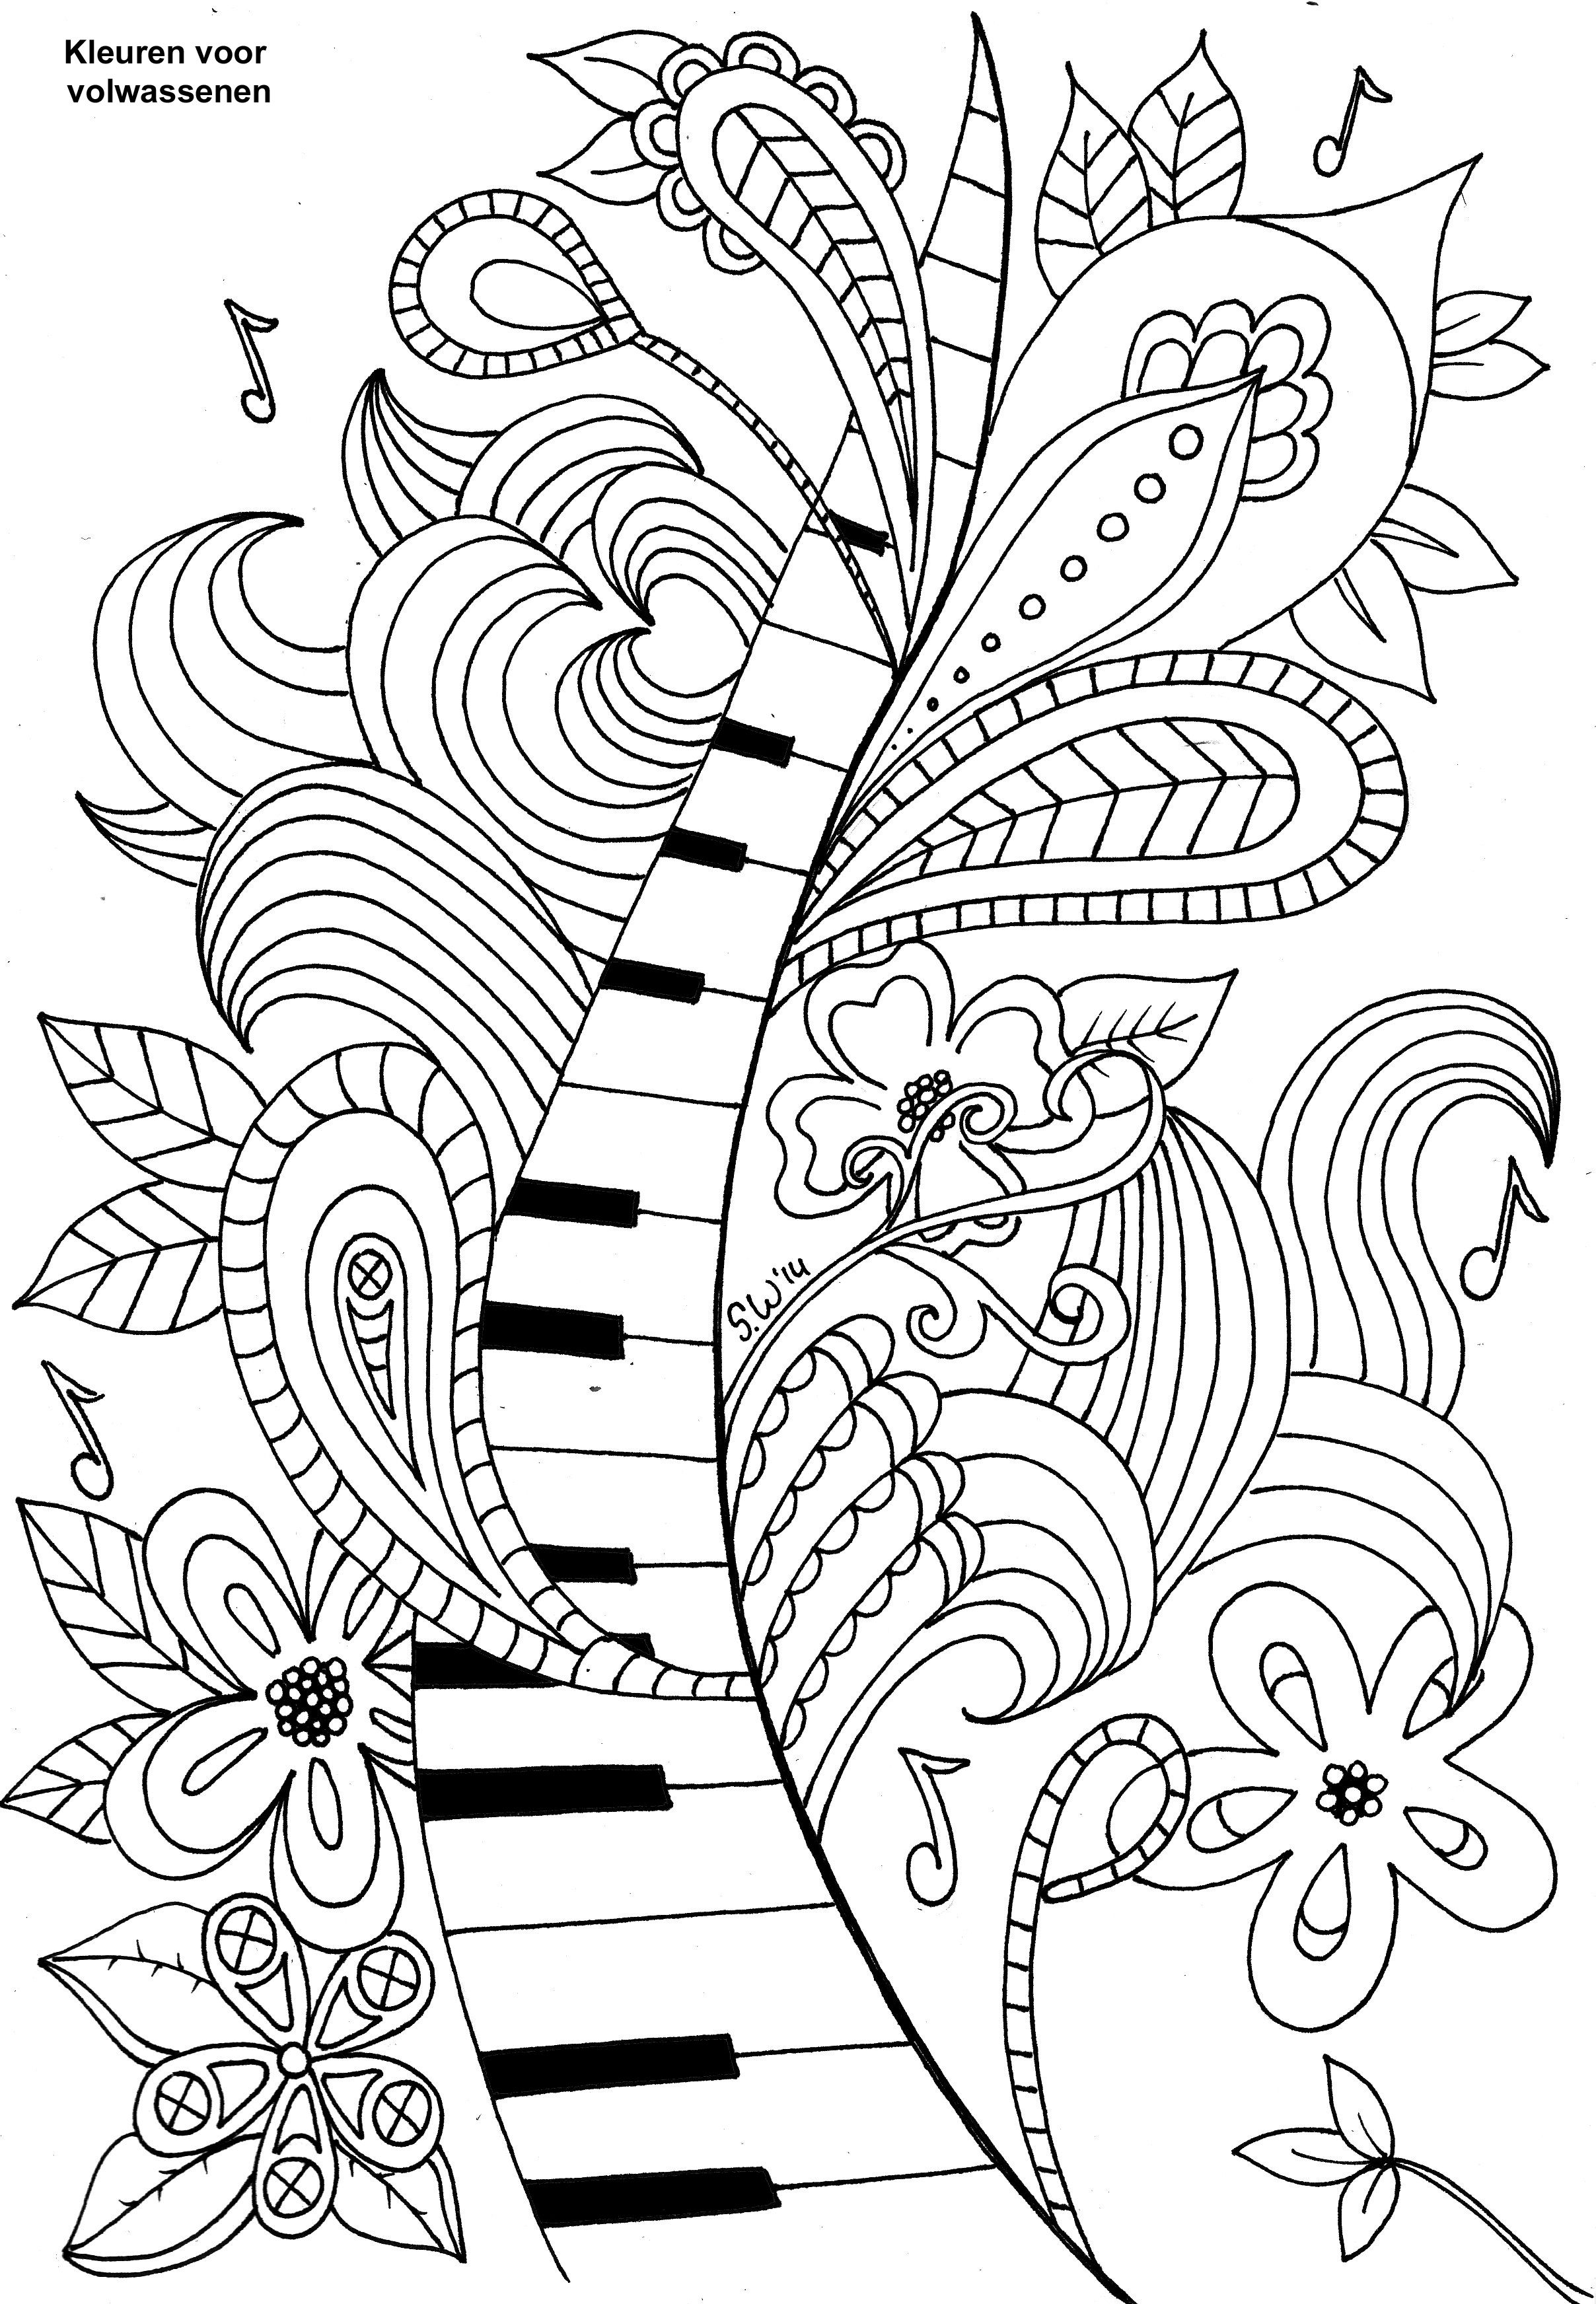 Coloring For Adults Kleuren Voor Volwassenen Music Coloring